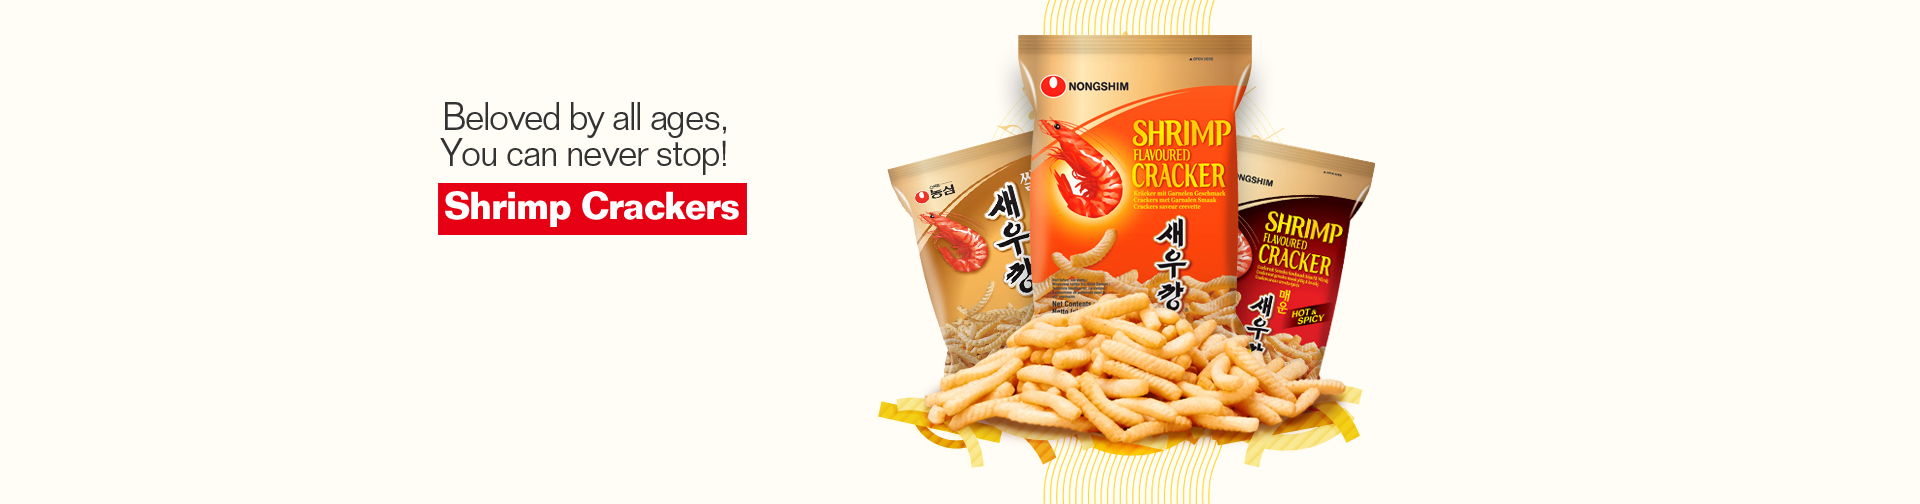 Grabbed by everyone~ Shrimp Crackers